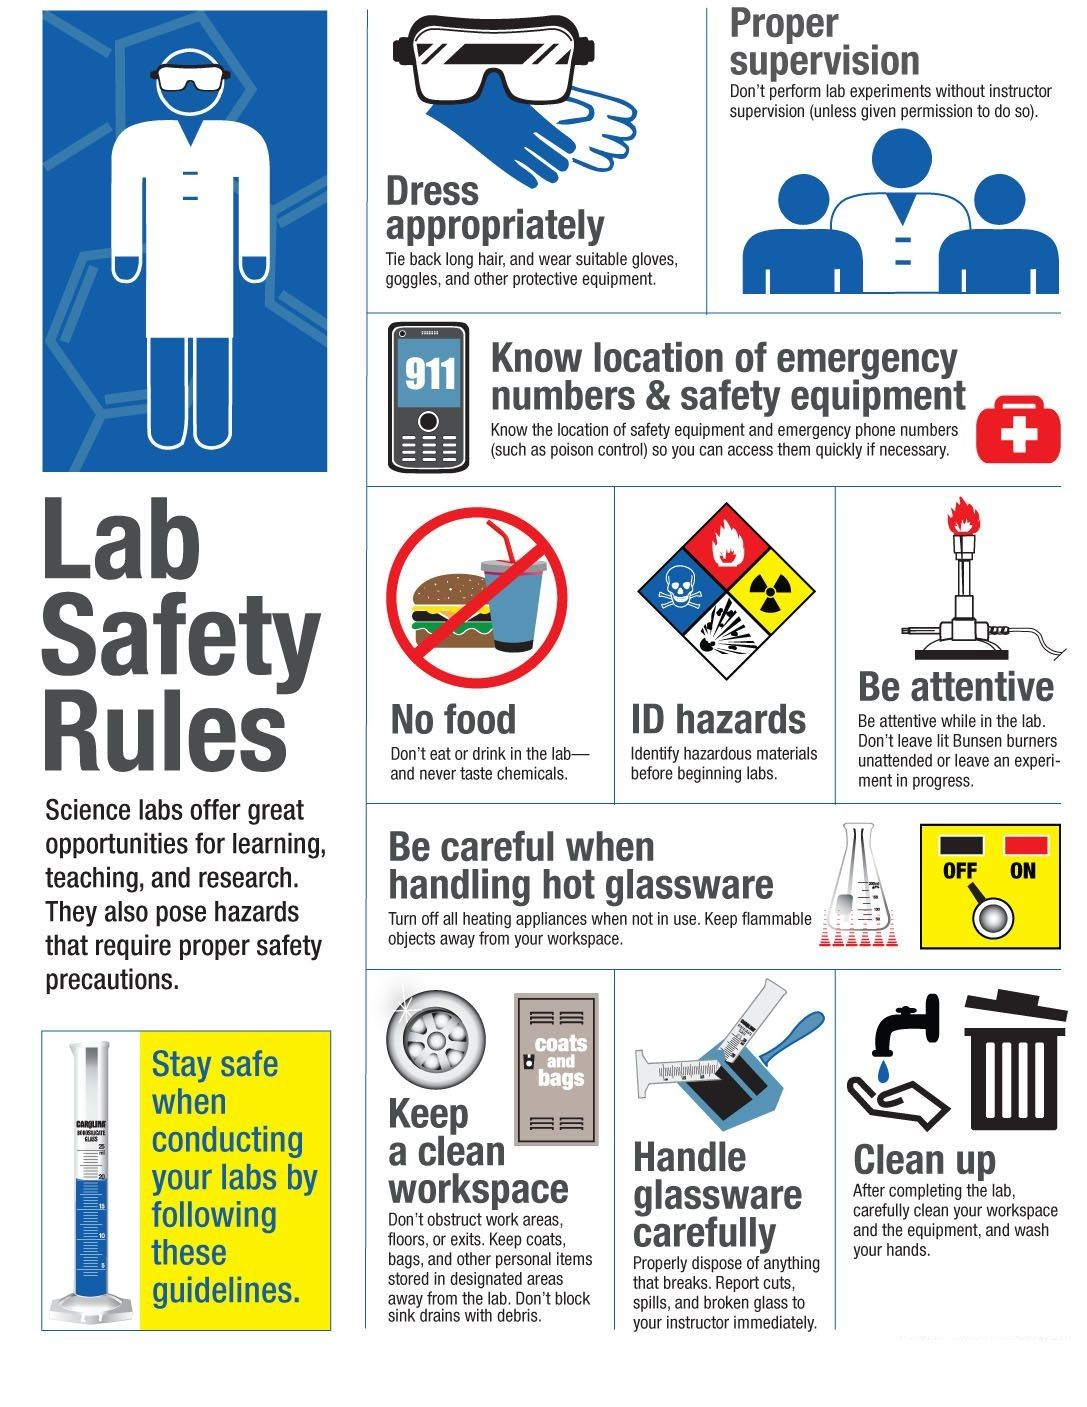 The Image Will Help You To Know What Lab Safety Rules Are